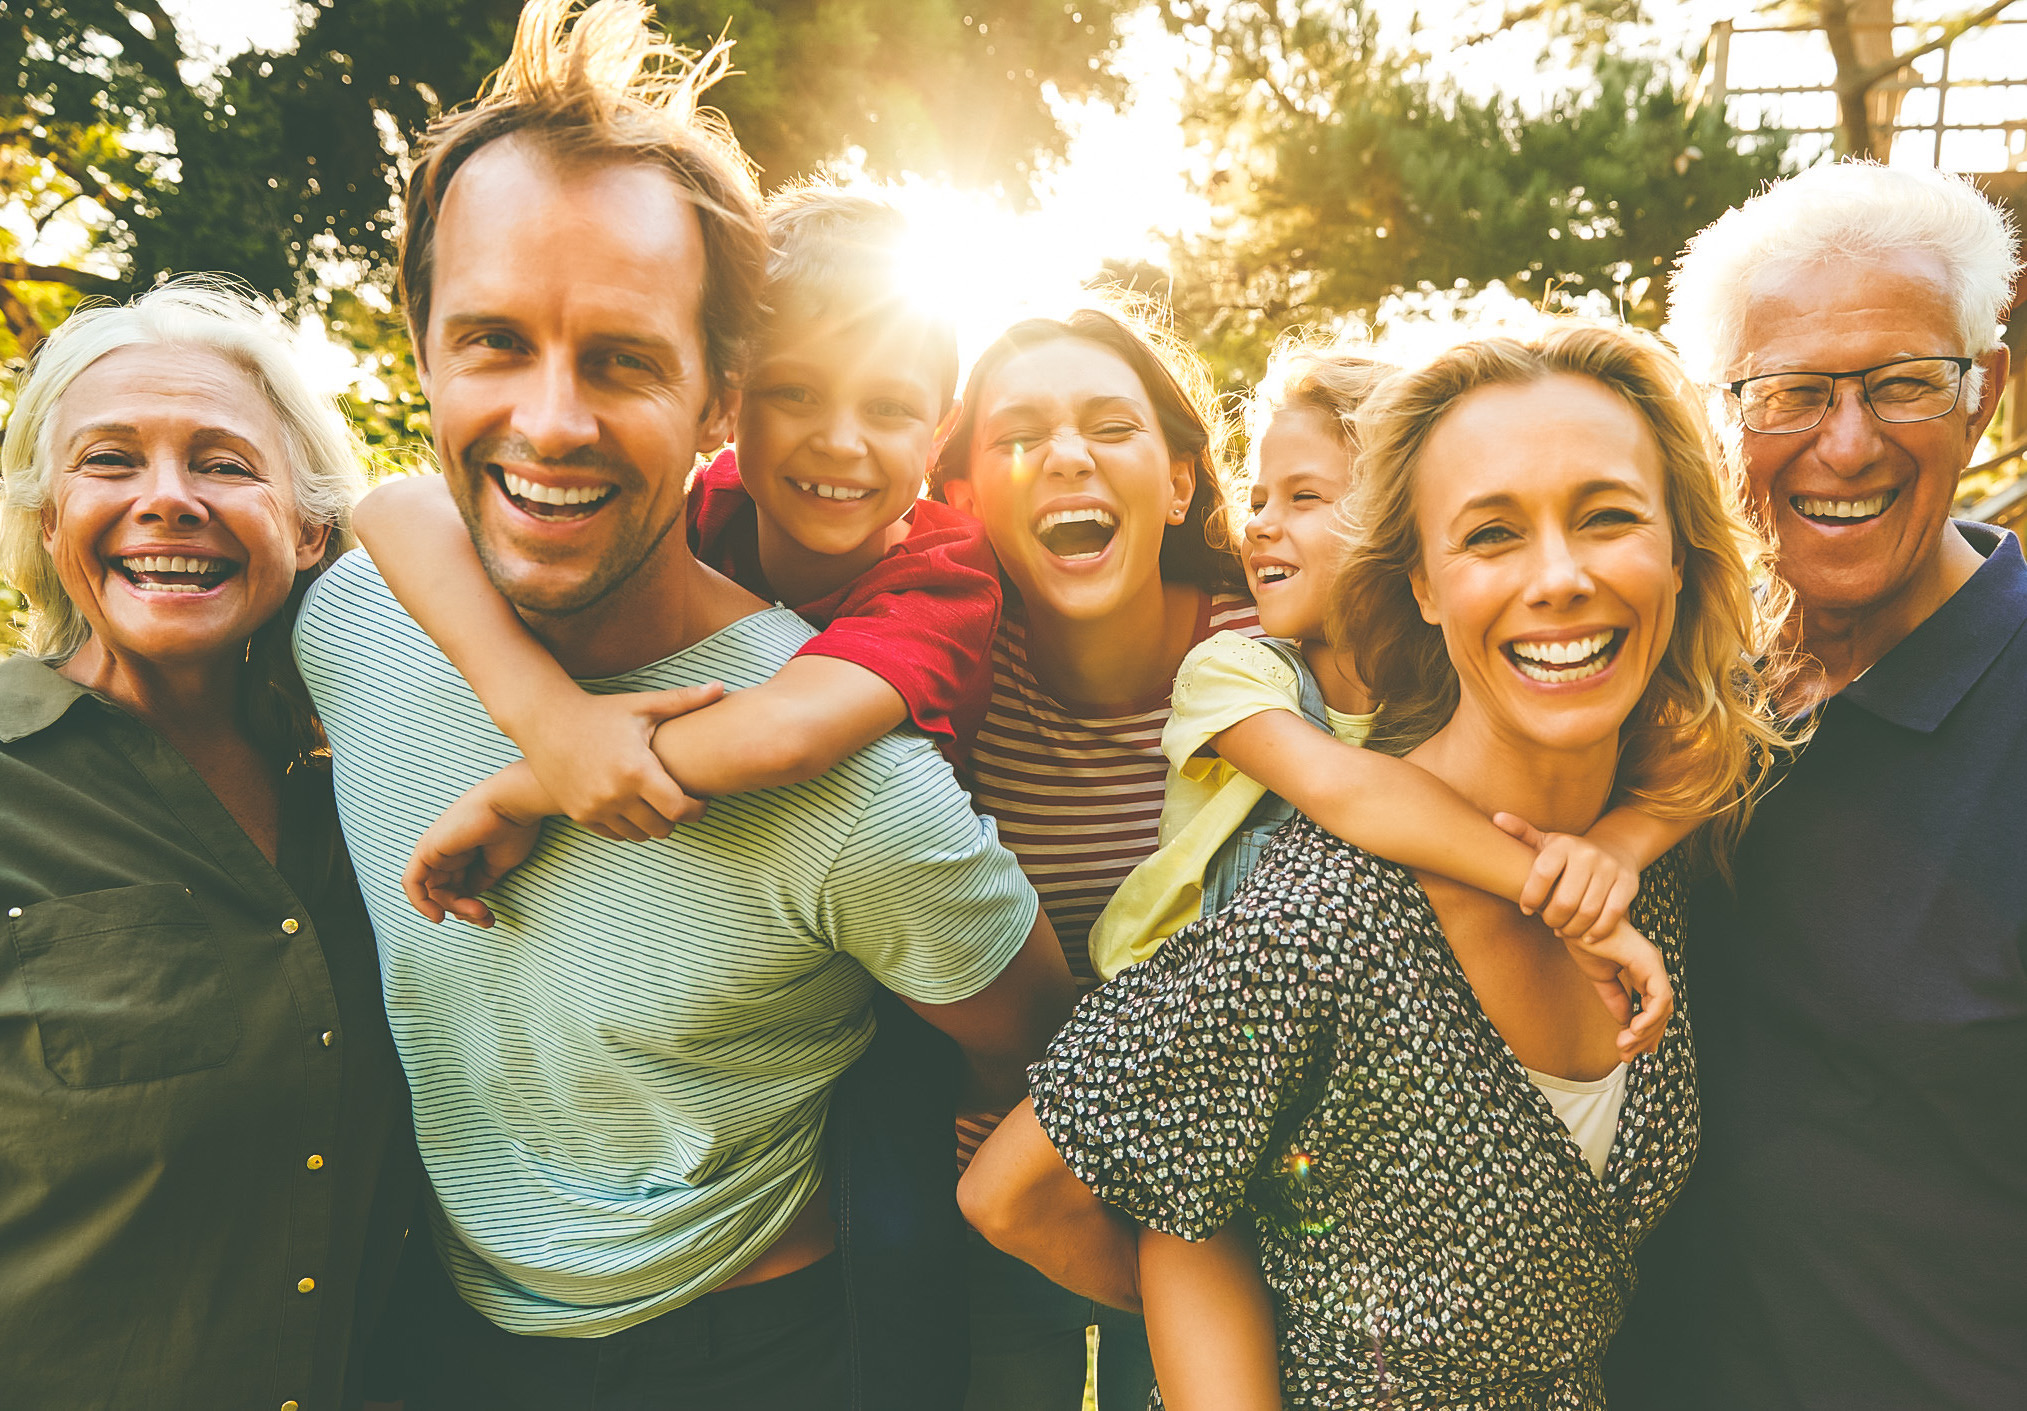 Outdoor Portrait Of Multi-Generation Family Walking In Countryside Against Flaring Sun